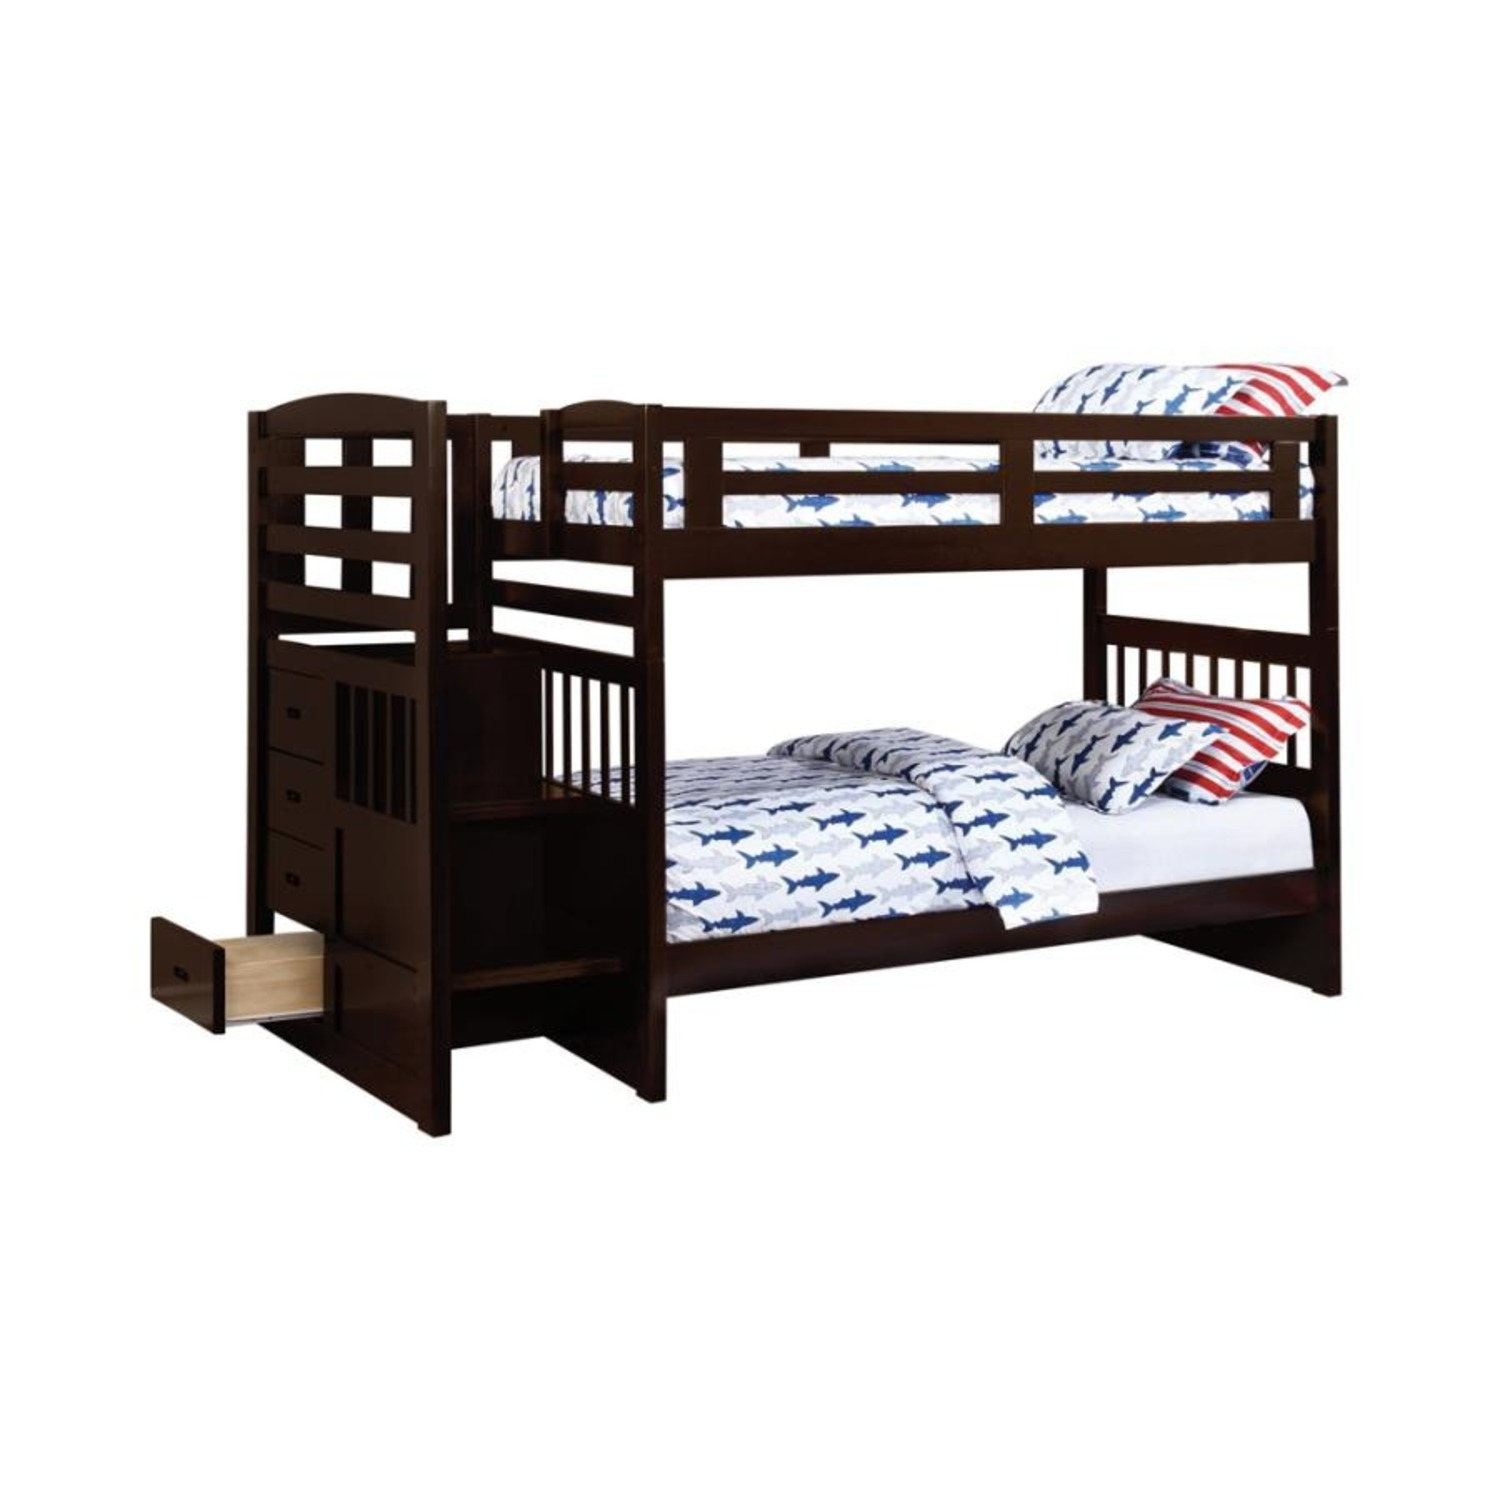 Twin Bunk Bed In Cappuccino W/ Storage Staircase - image-0